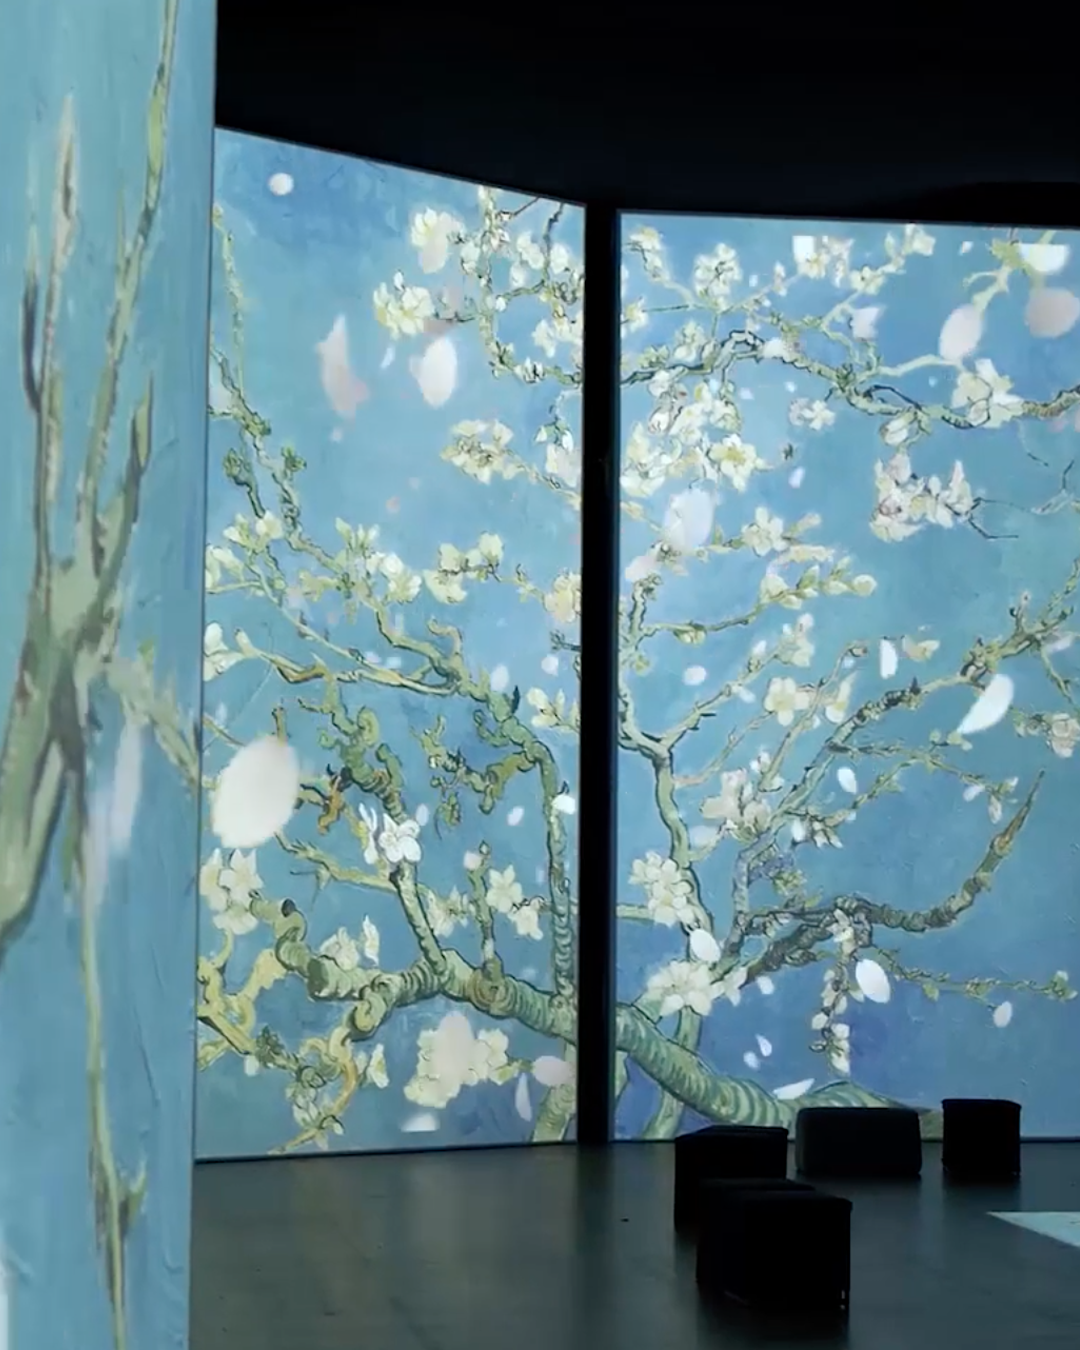 A photo from the Van Gogh alive exhibition showing the almond blossom paintings displayed on digital screens